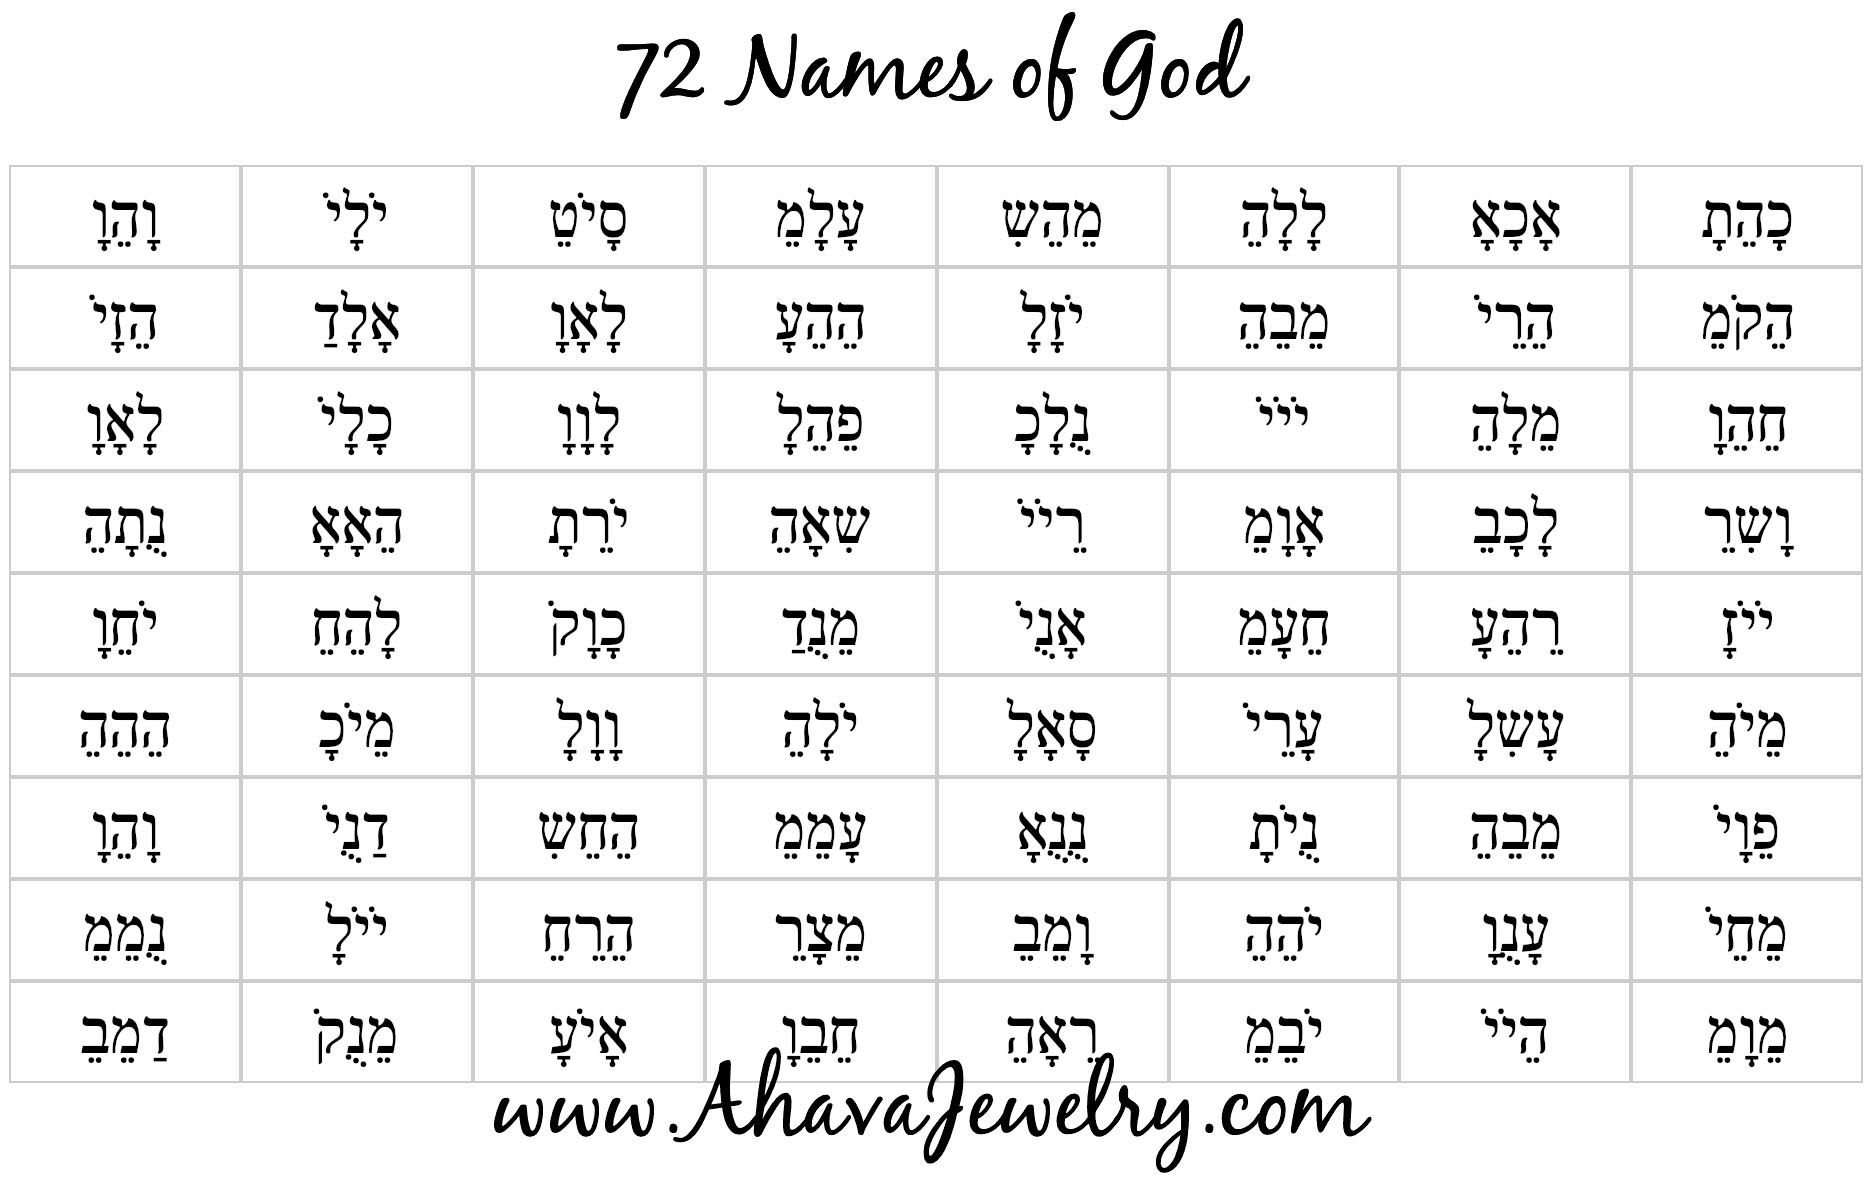 72 names of GOD